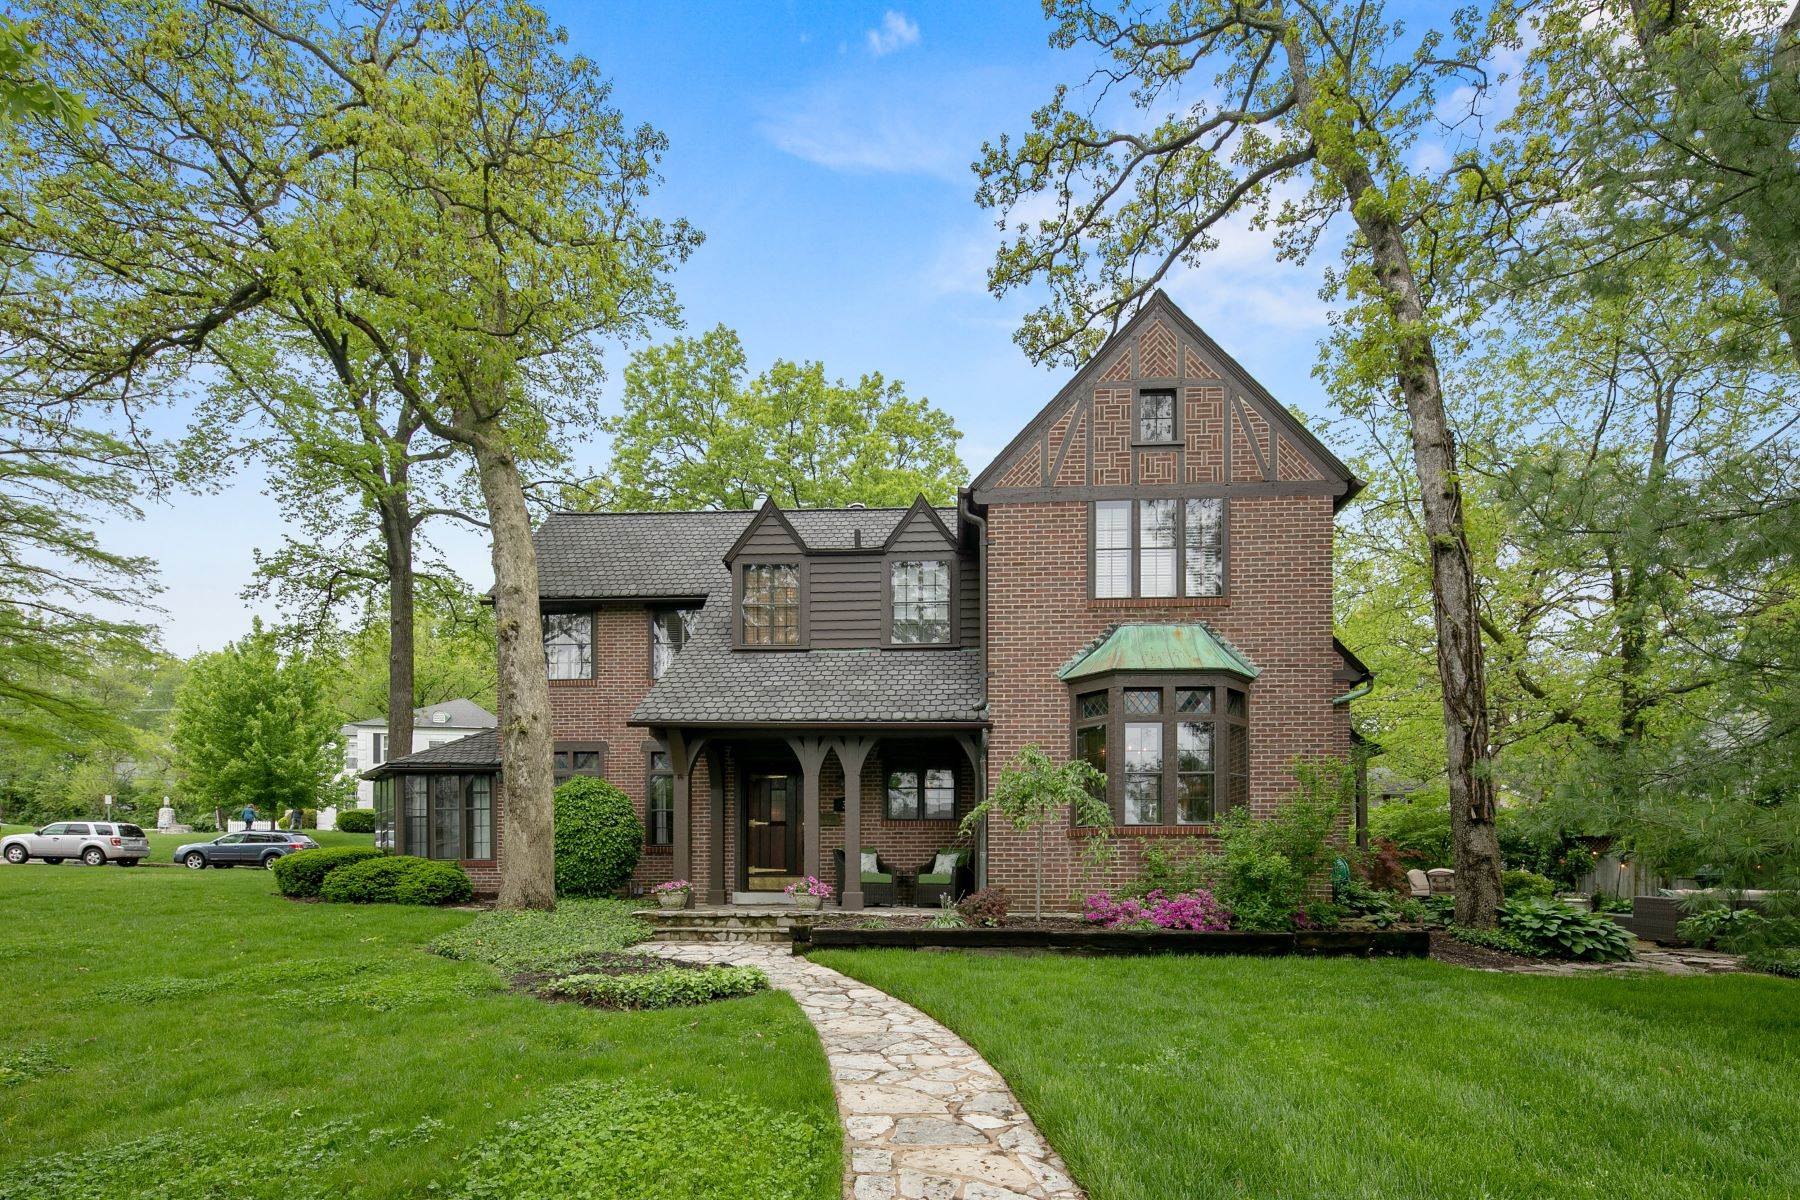 Single Family Home for Sale at A Stone's Throw from Algonquin Country Club! 33 Algonquin Wood St. Louis, Missouri 63122 United States